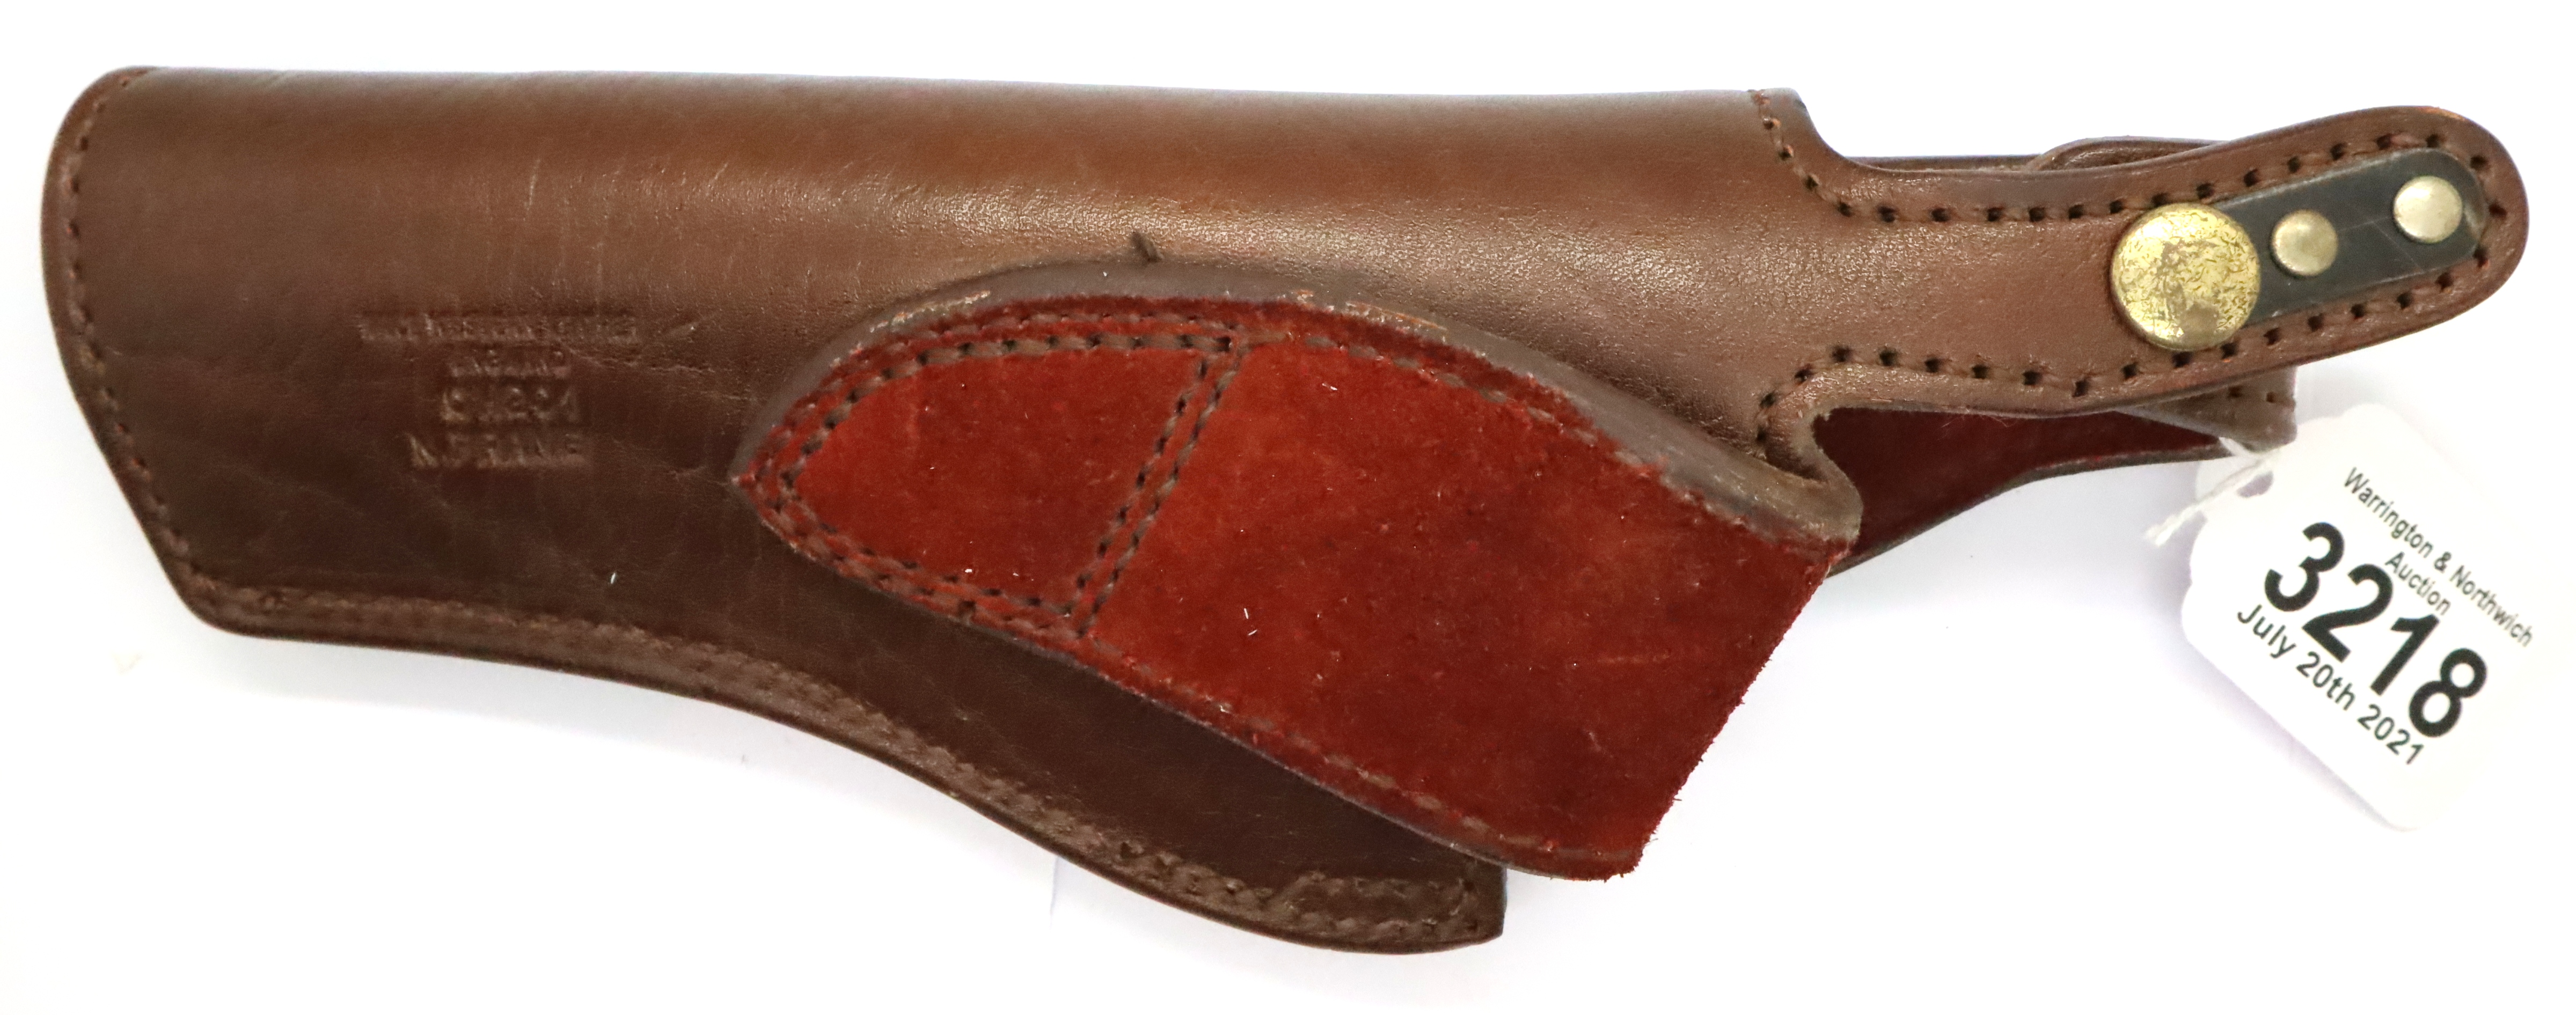 Good quality Price Western leather N frame holster. P&P Group 1 (£14+VAT for the first lot and £1+